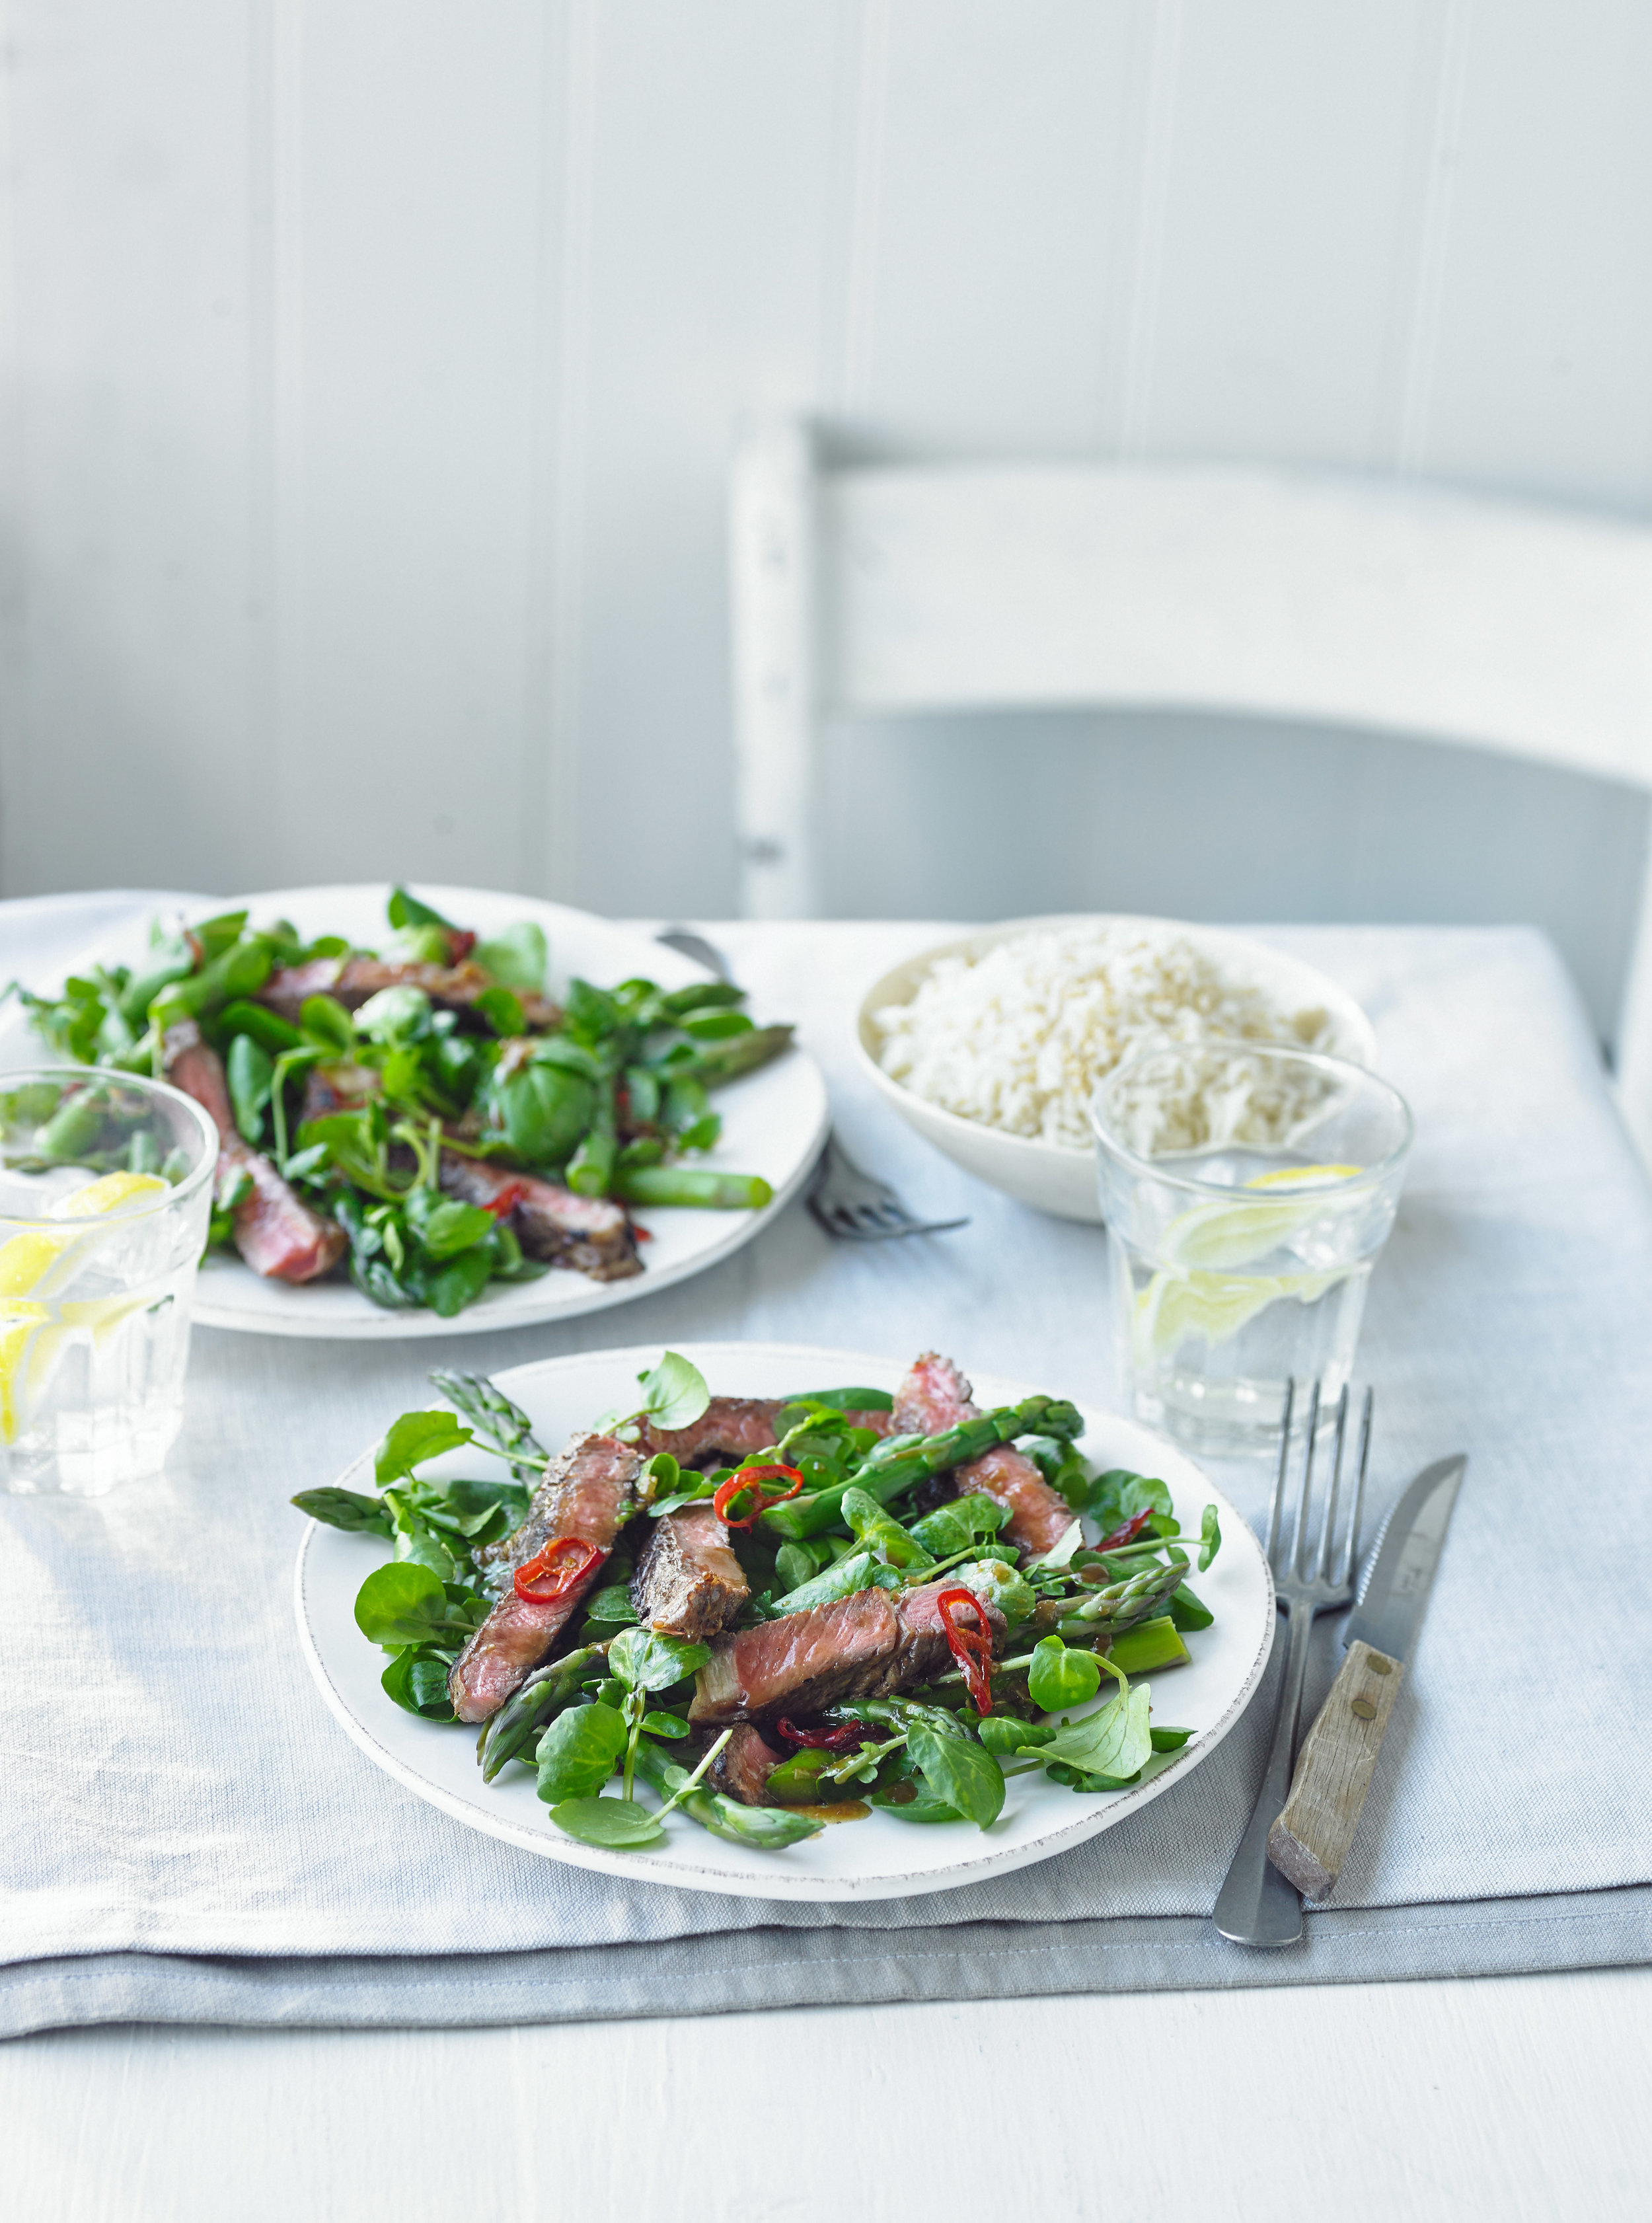 Vietnamese_steak_with_asparagus_and_watercress.jpg